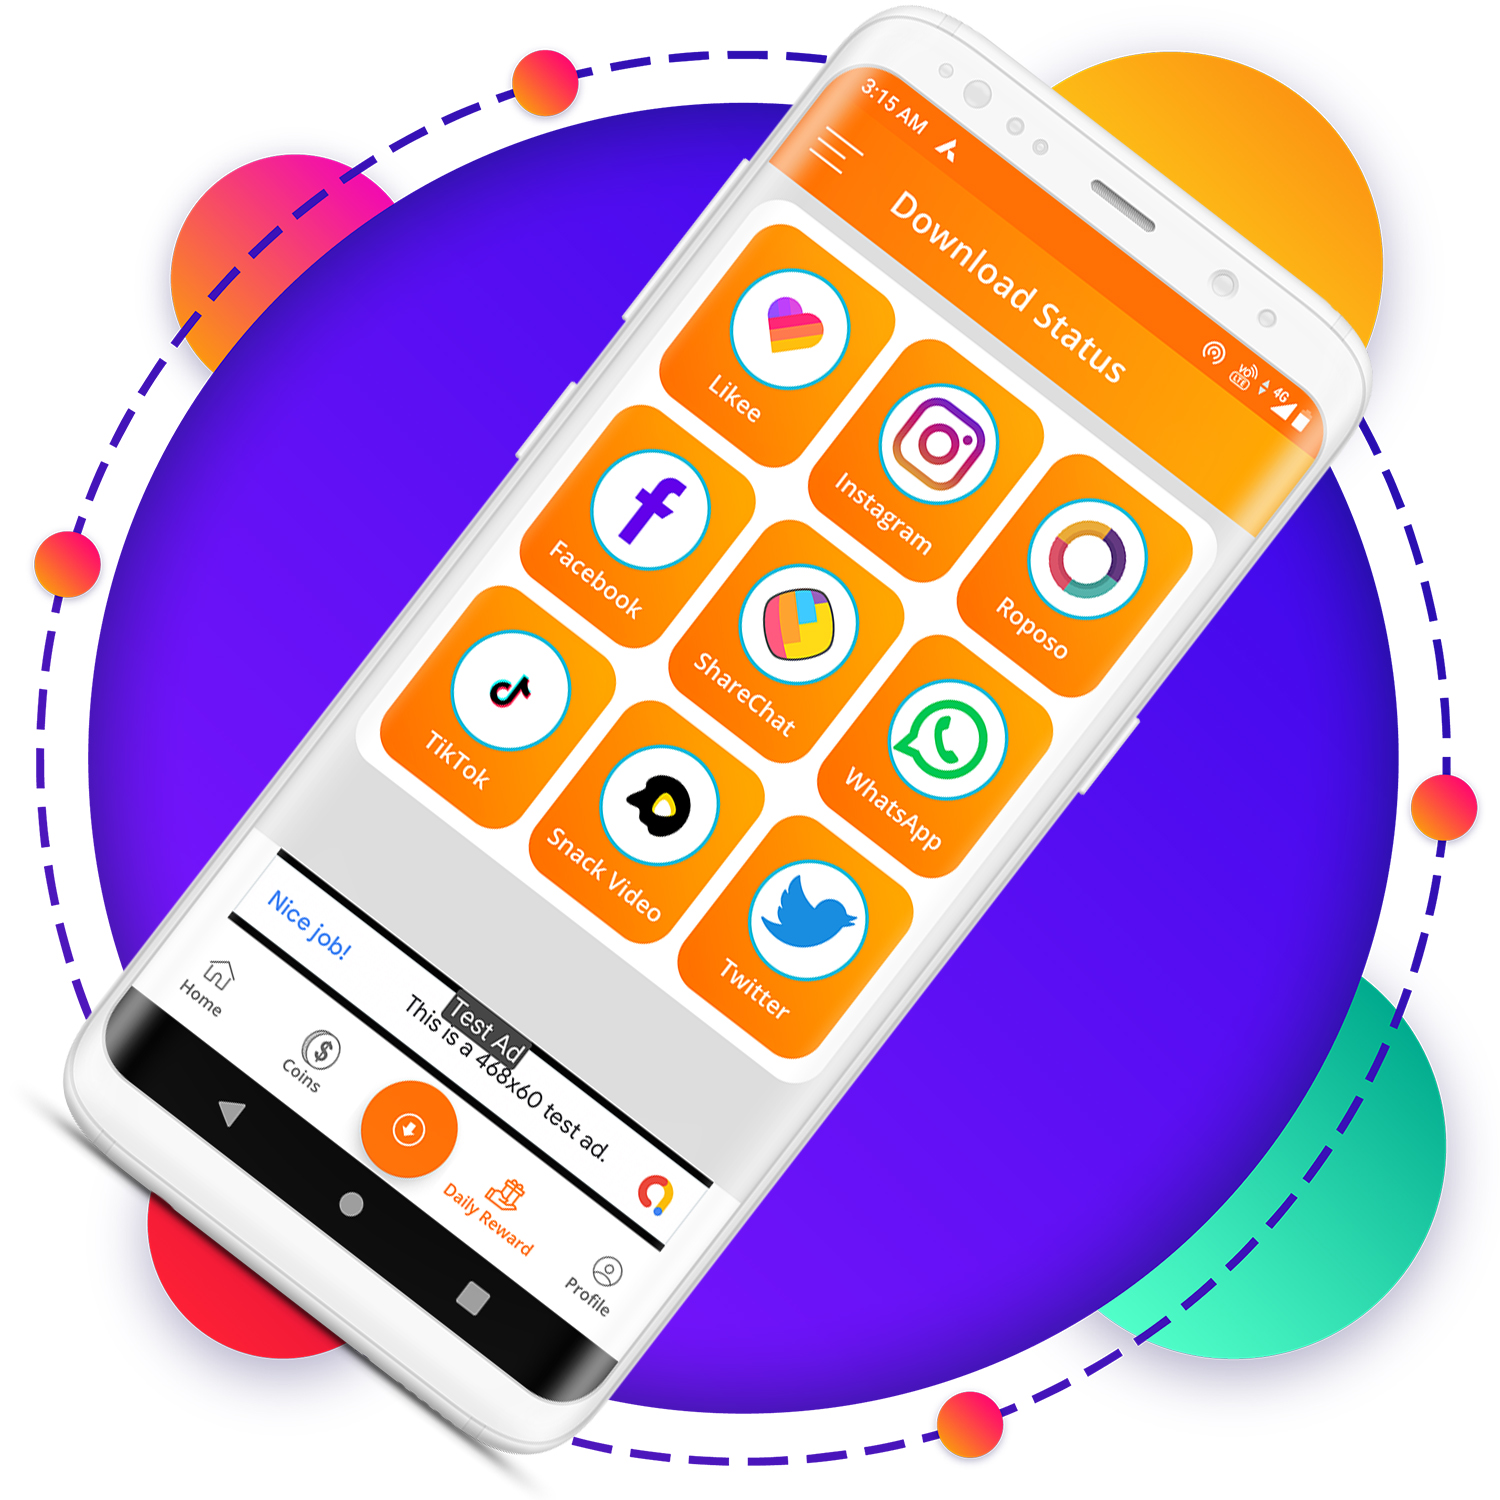 QuickCash All In One Money Earning Android App + Games + WhatsApp Tools + Earning System Admin Panel - 6